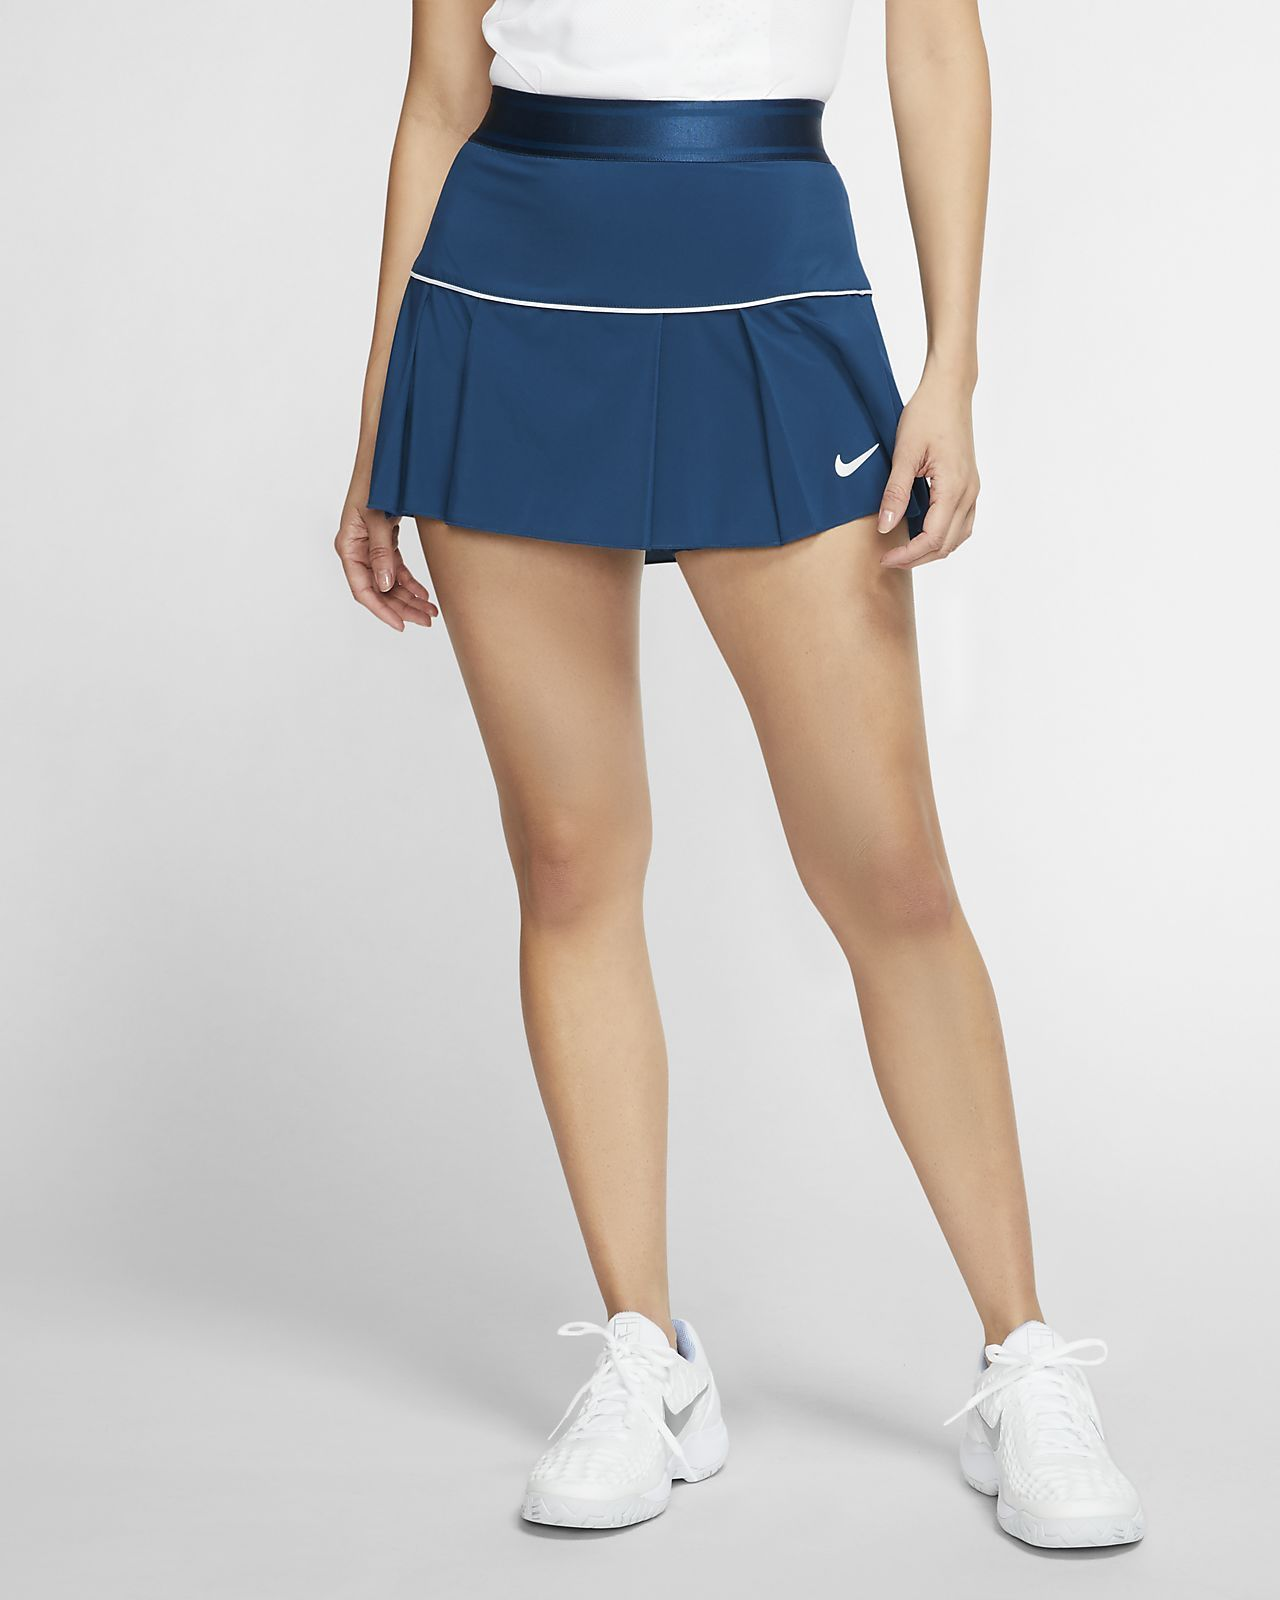 Nikecourt Victory Women S Tennis Skirt Nike Com In 2020 Womens Tennis Skirts Tennis Outfit Women Tennis Skirt Outfit